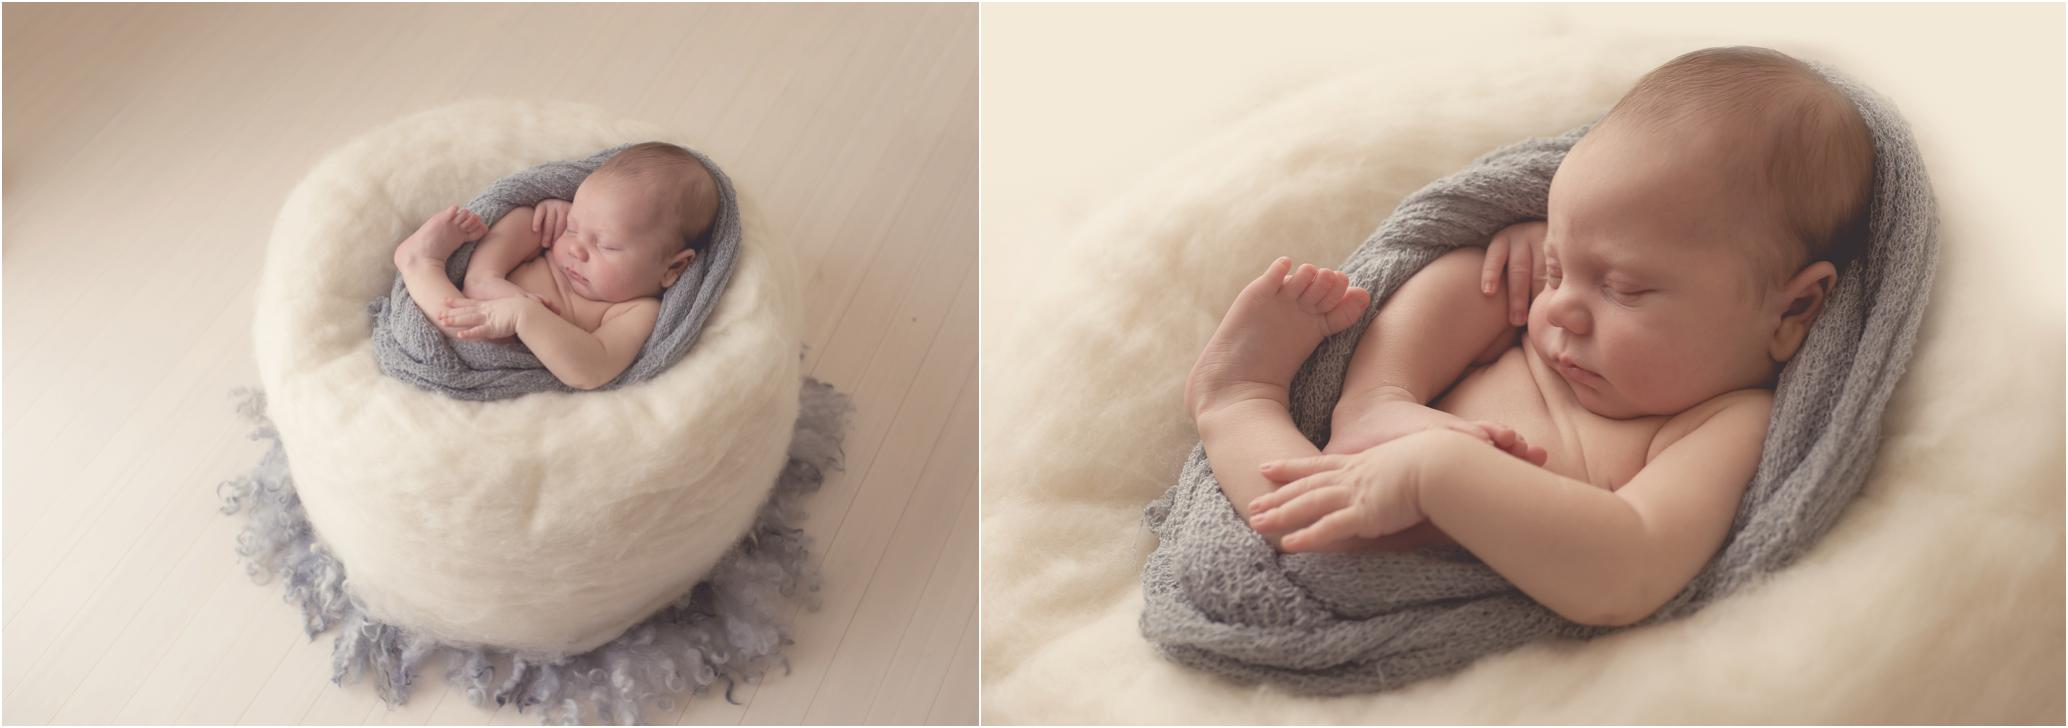 Newborn Photography Ocean Grove_0515